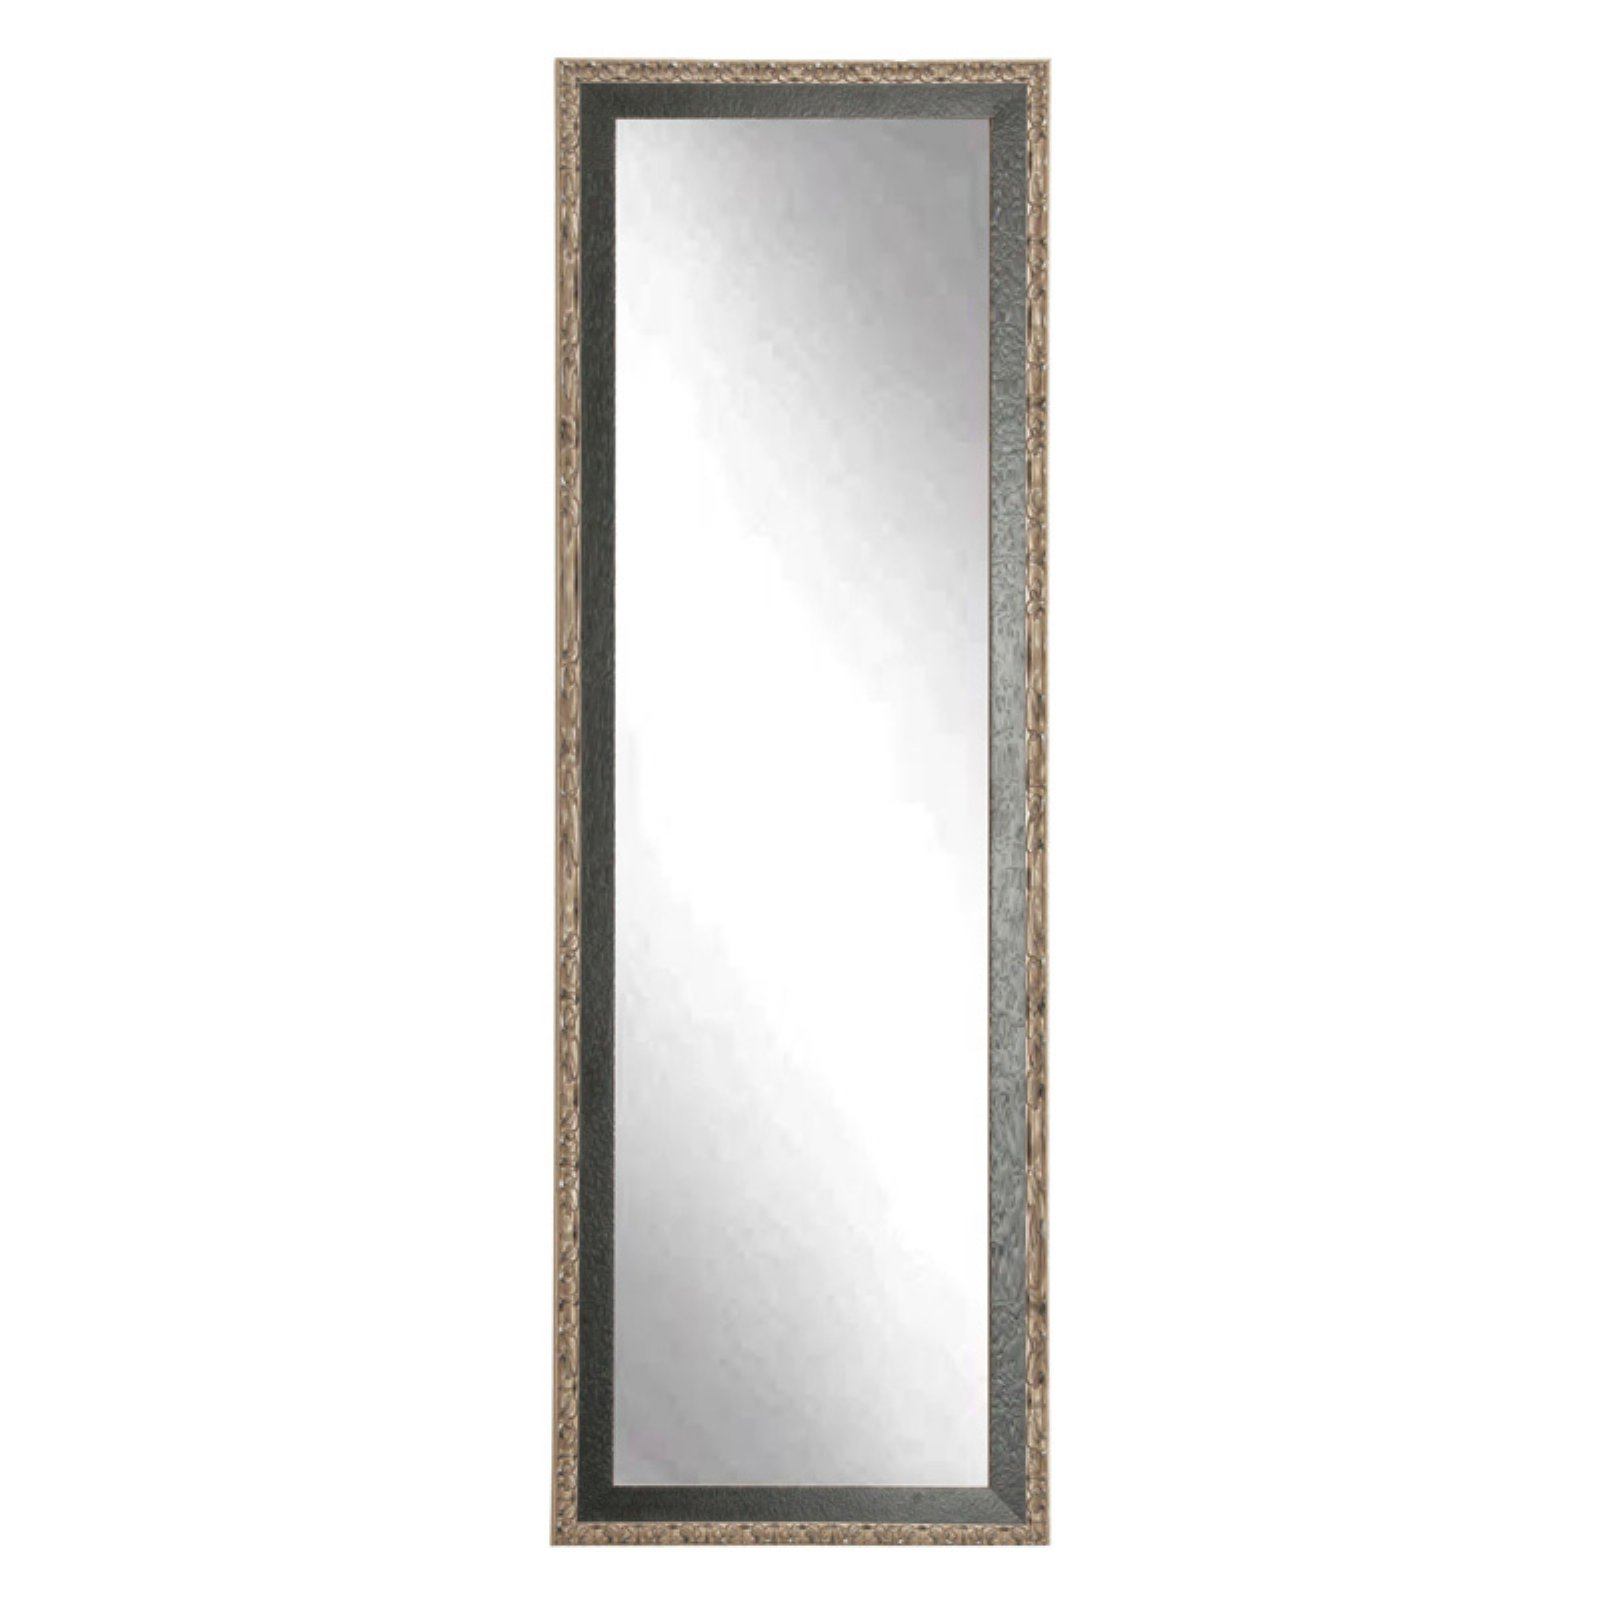 BrandtWorks American Accent Leaning Floor Mirror Black Pewter by Overstock